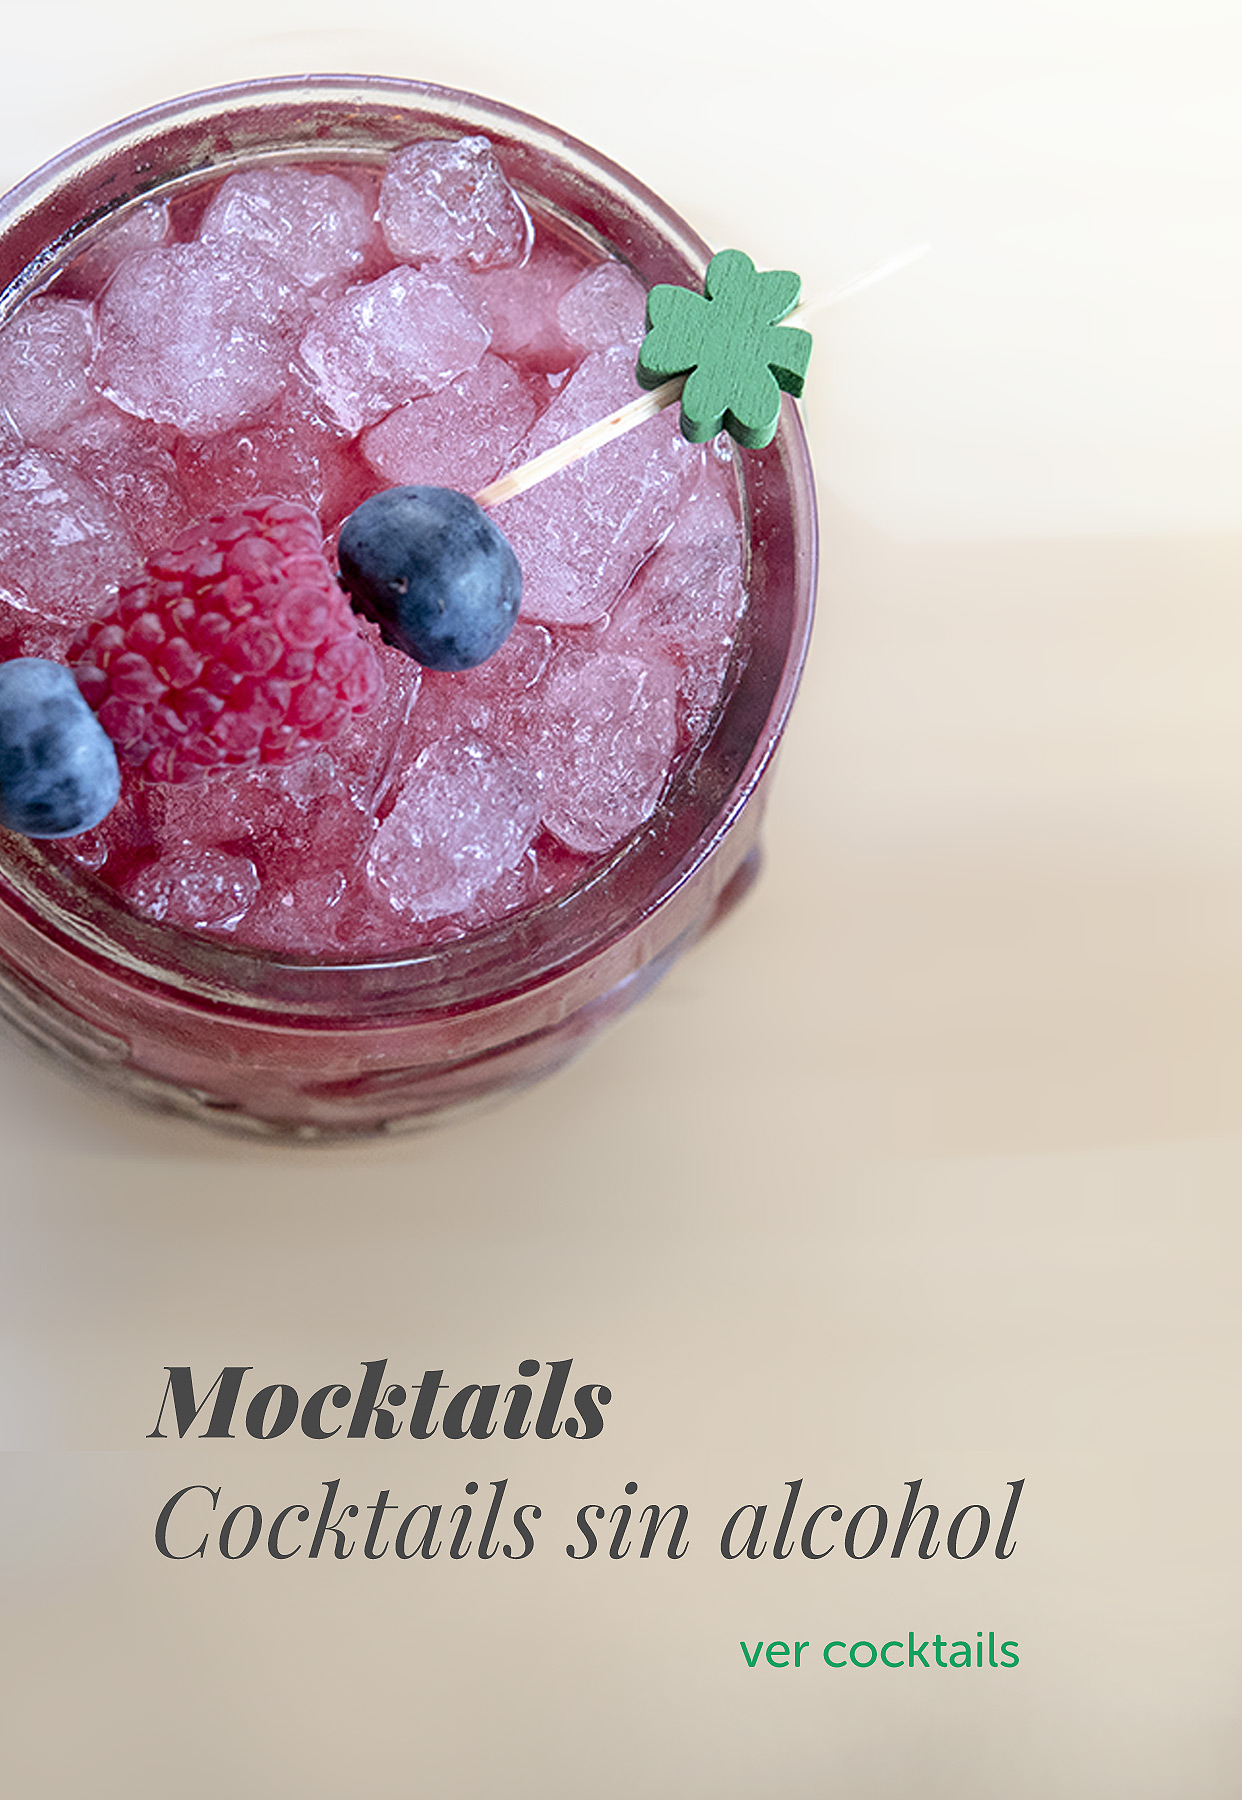 Mocktails, cocktails sin alcohol